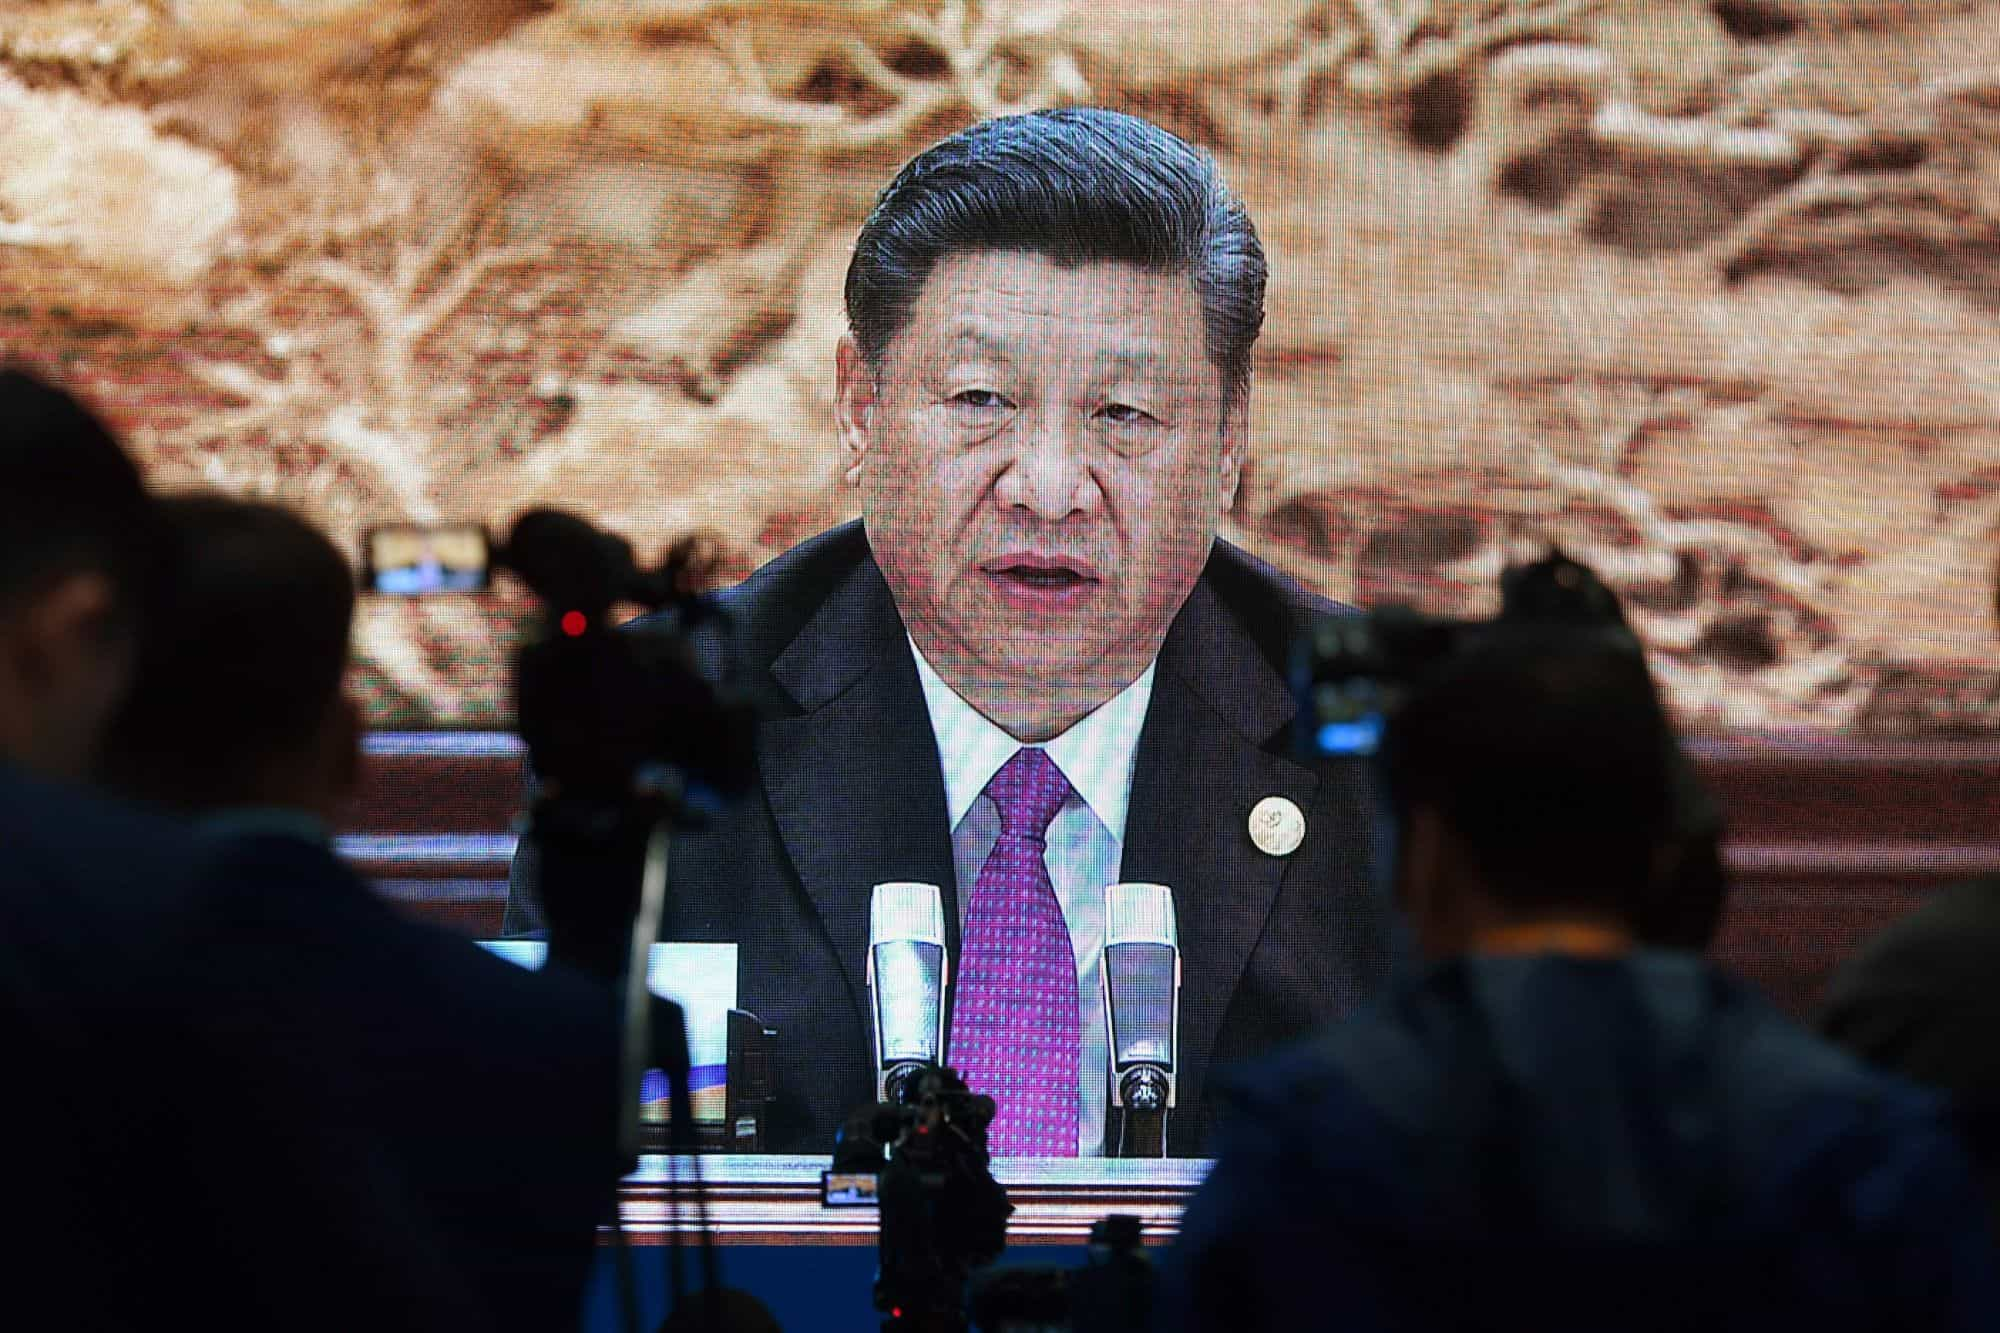 Journalists watch an image of Chinese President Xi Jinping speaking at the Belt and Road Forum in Beijing in April 2019.